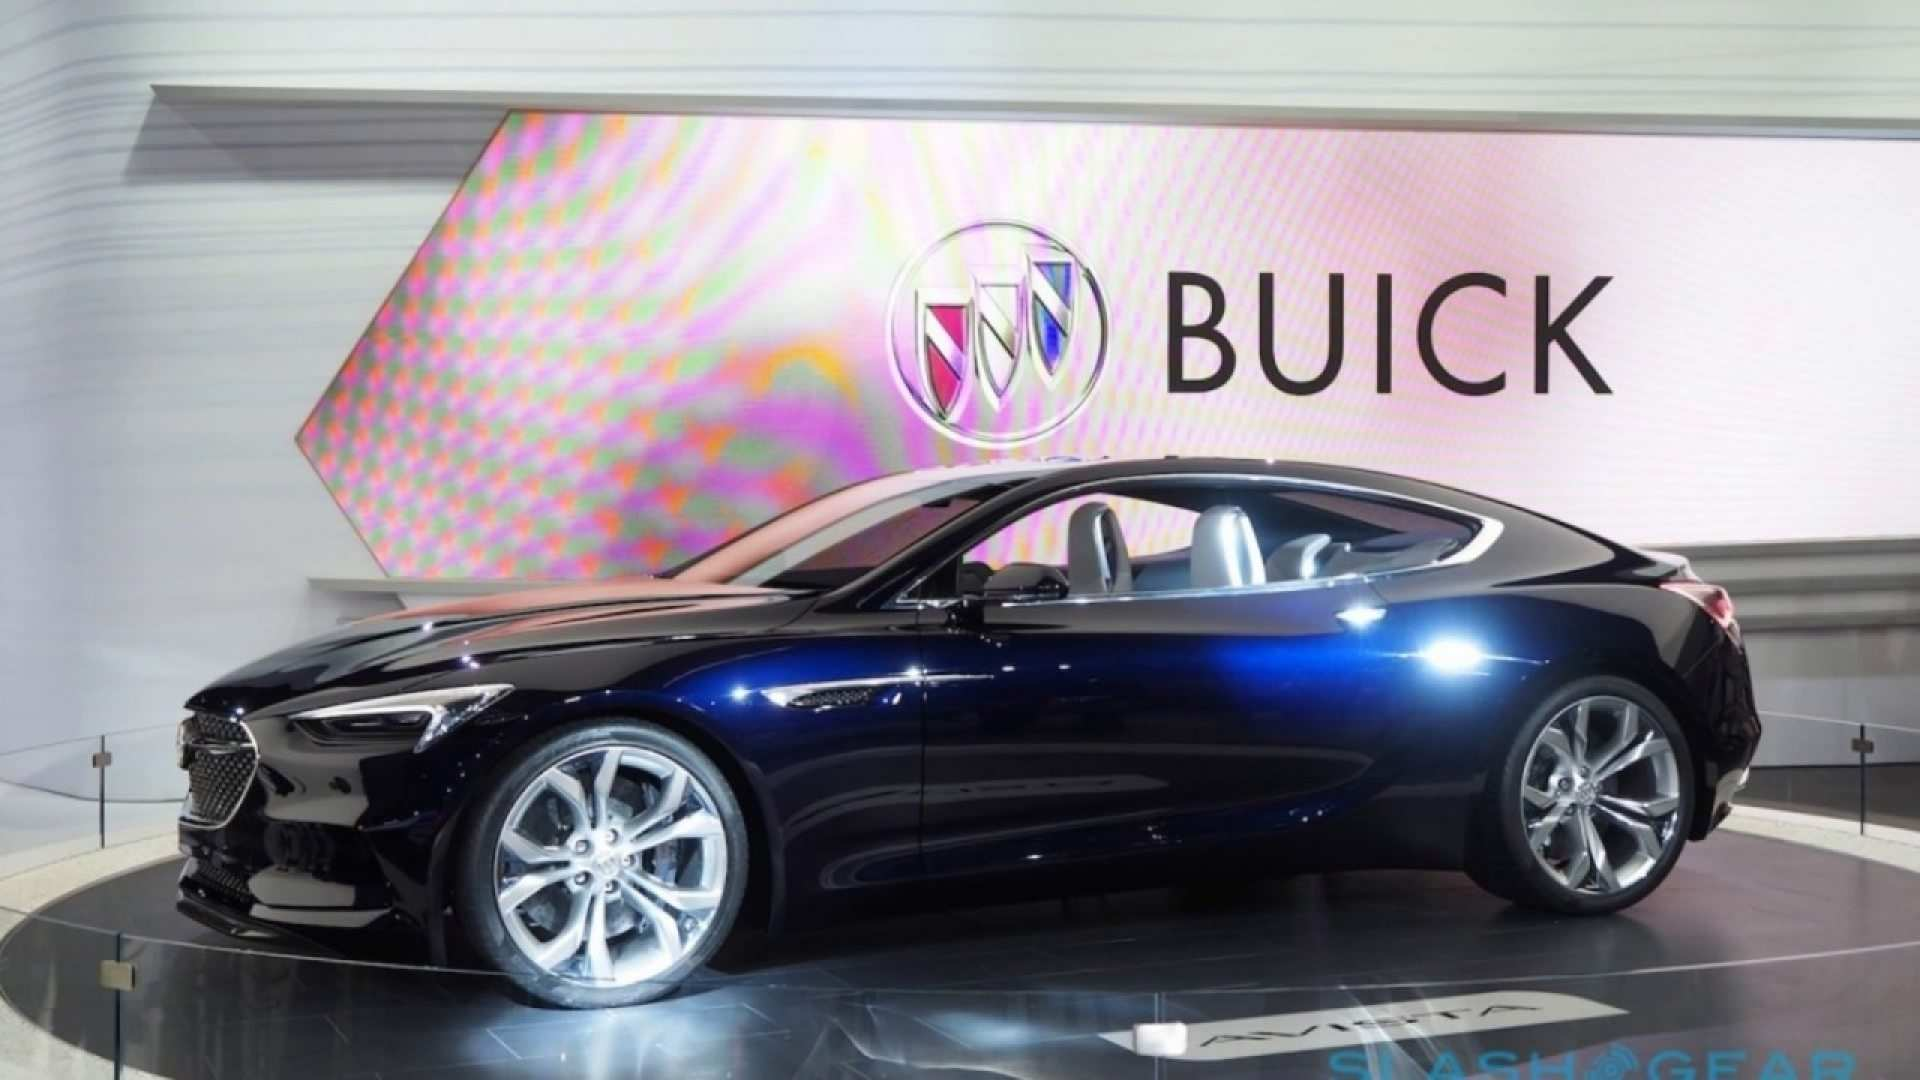 56 New 2019 Buick Regal Avenir First Drive Images with 2019 Buick Regal Avenir First Drive